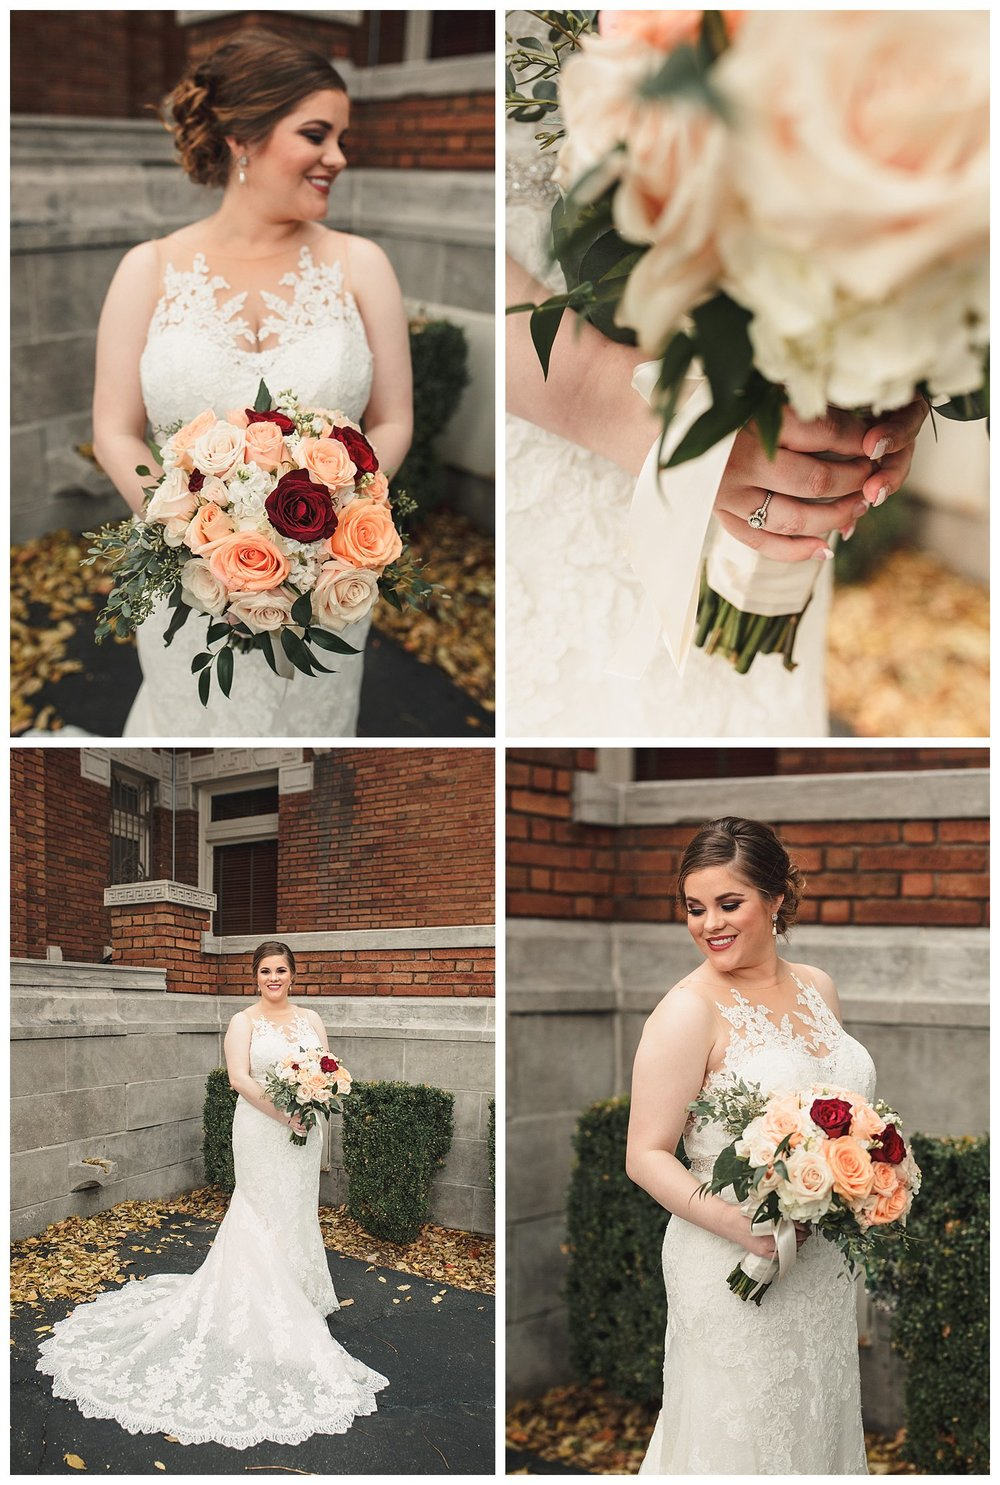 Kelsey_Diane_Photography_Loose_Mansion_Wedding_Photography_Kansas_City_Victor_Lyndsay_0133.jpg